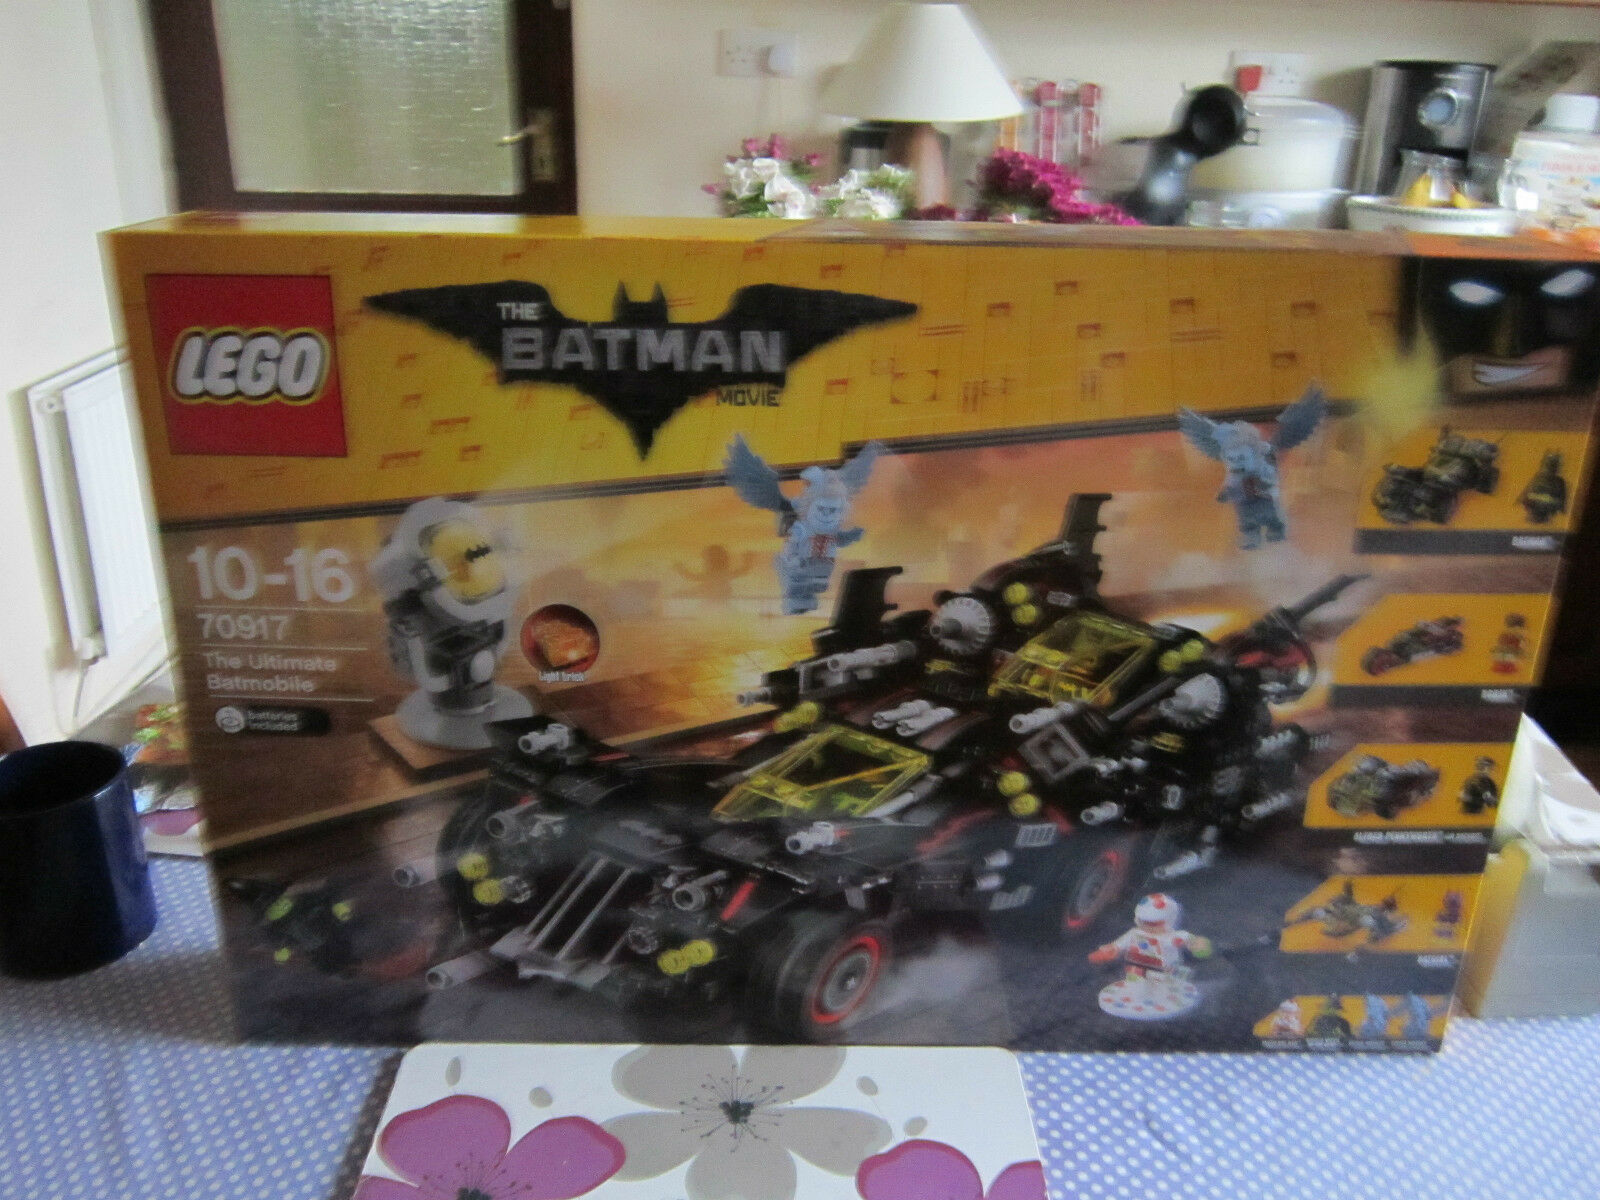 Brand new the ultimate batmobile, FIGURES HAVE BEEN REMOVED.